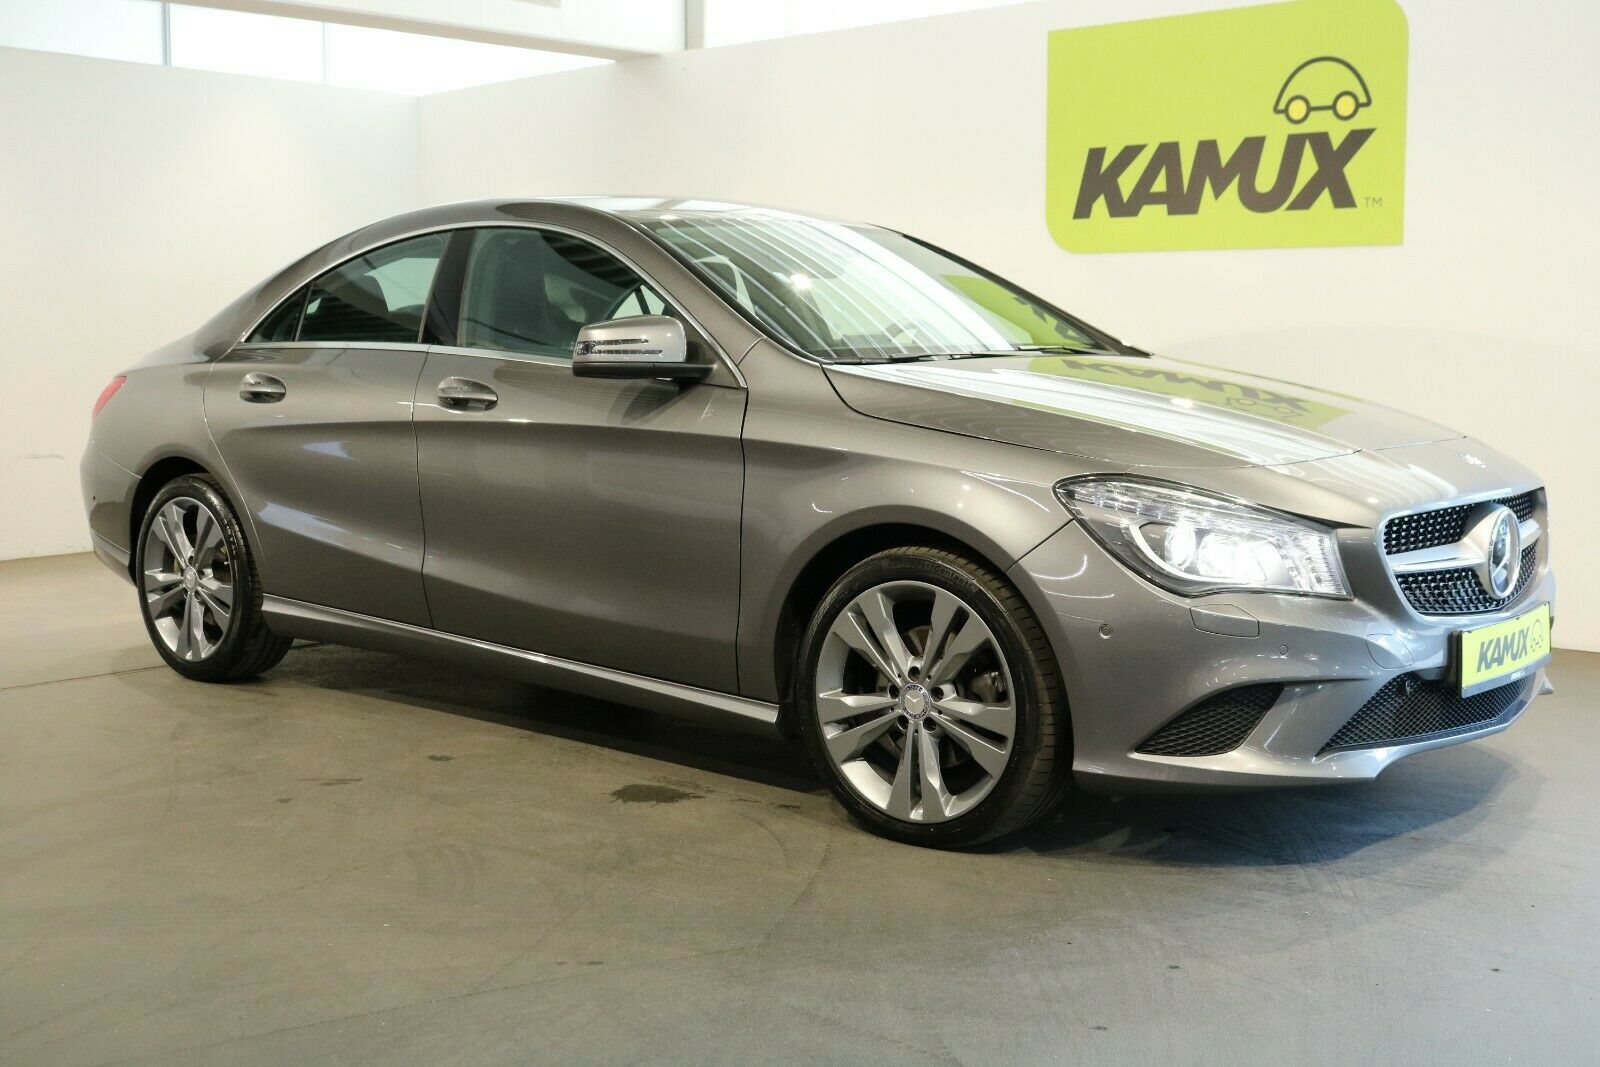 MERCEDES-BENZ CLA220 CDI  7G-DCT +Xenon+Navi +Distronic Plus+